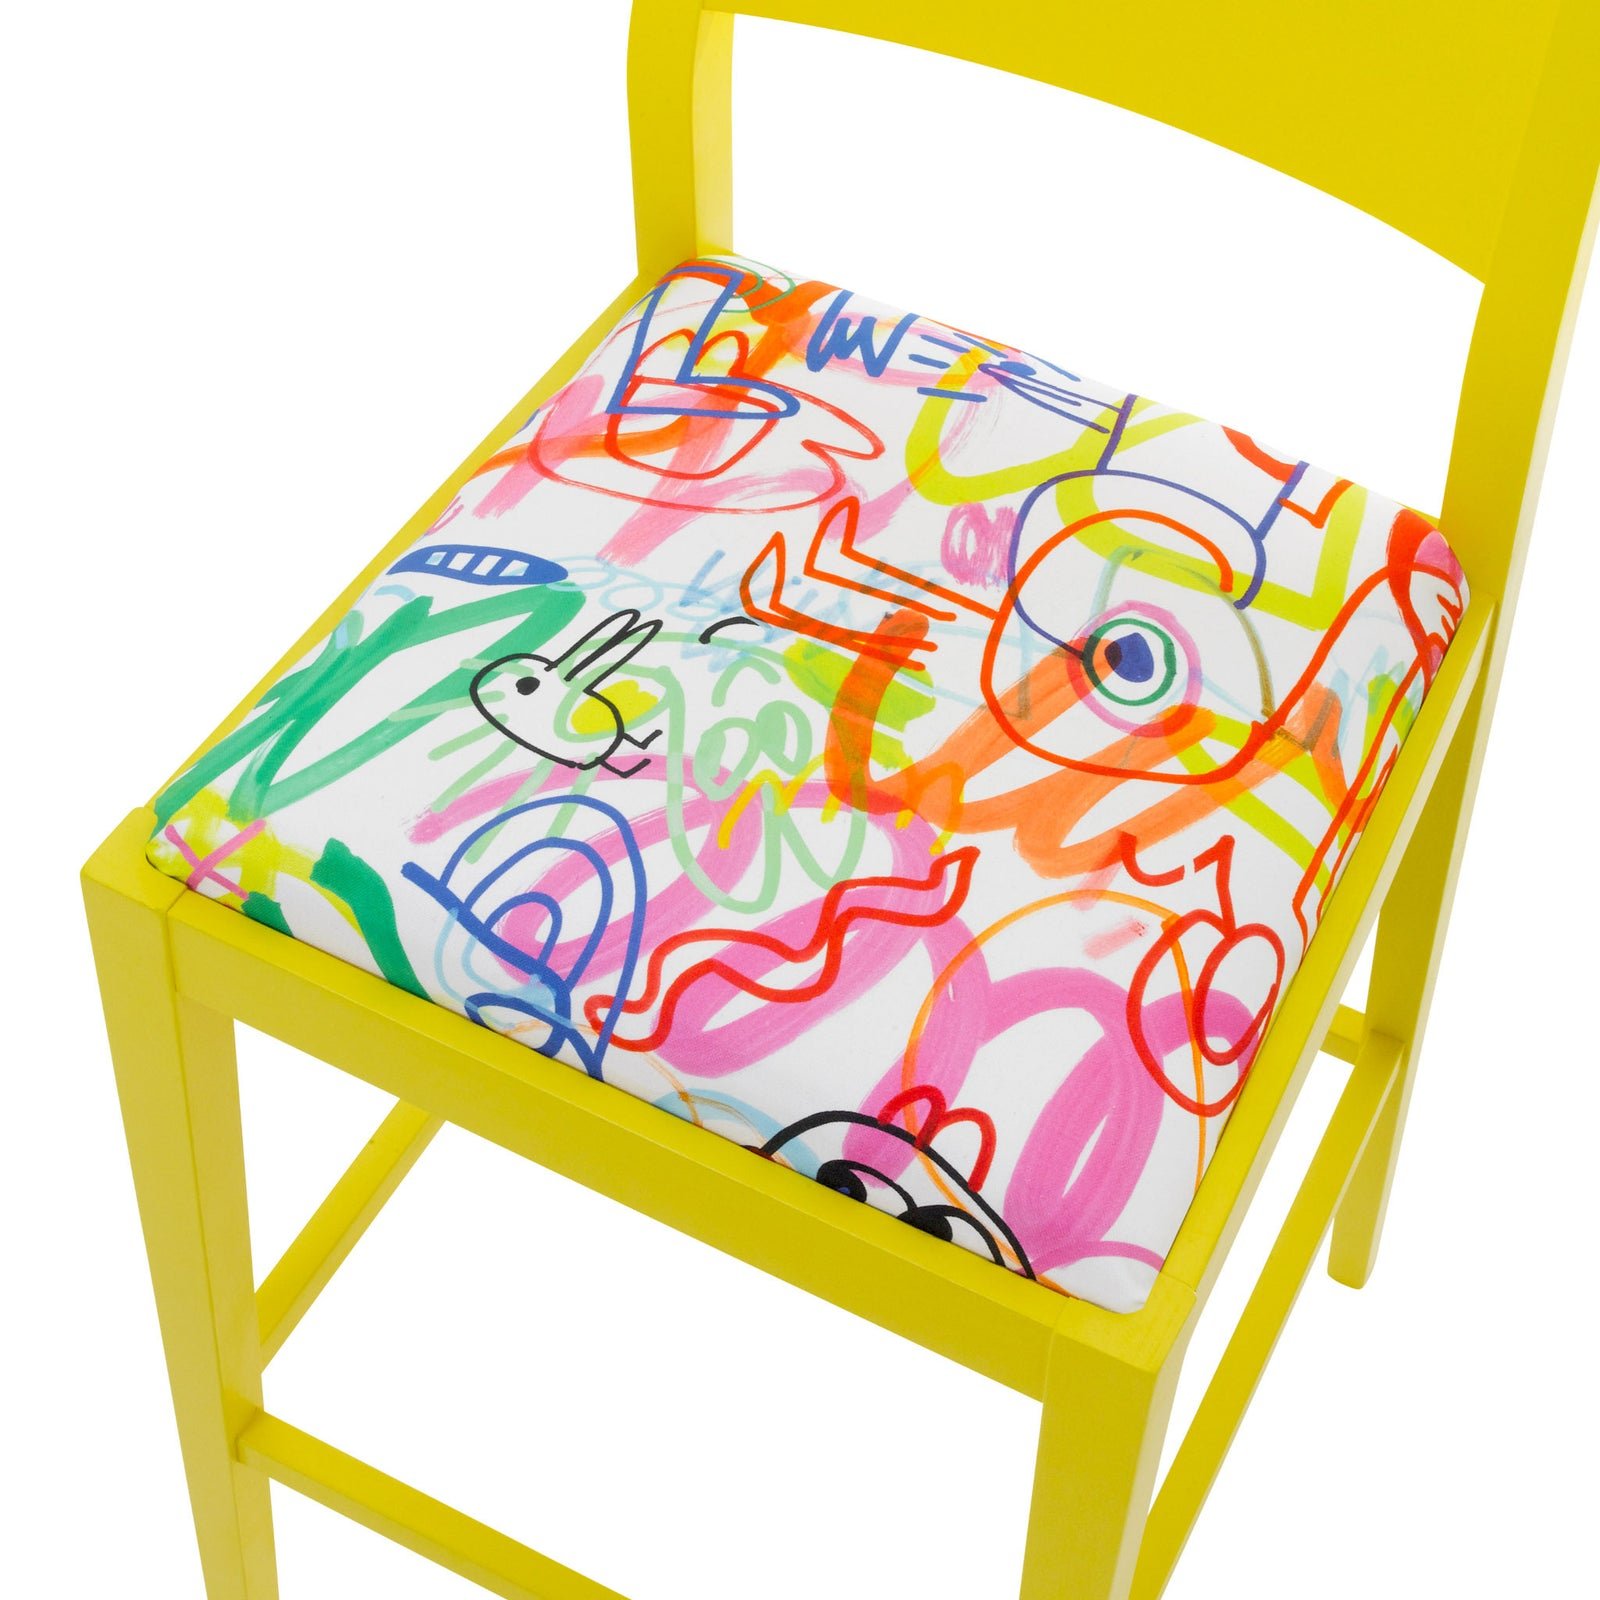 James Shaker Style Bar Stool Upholstered in Jon Burgerman Sunny Doodles